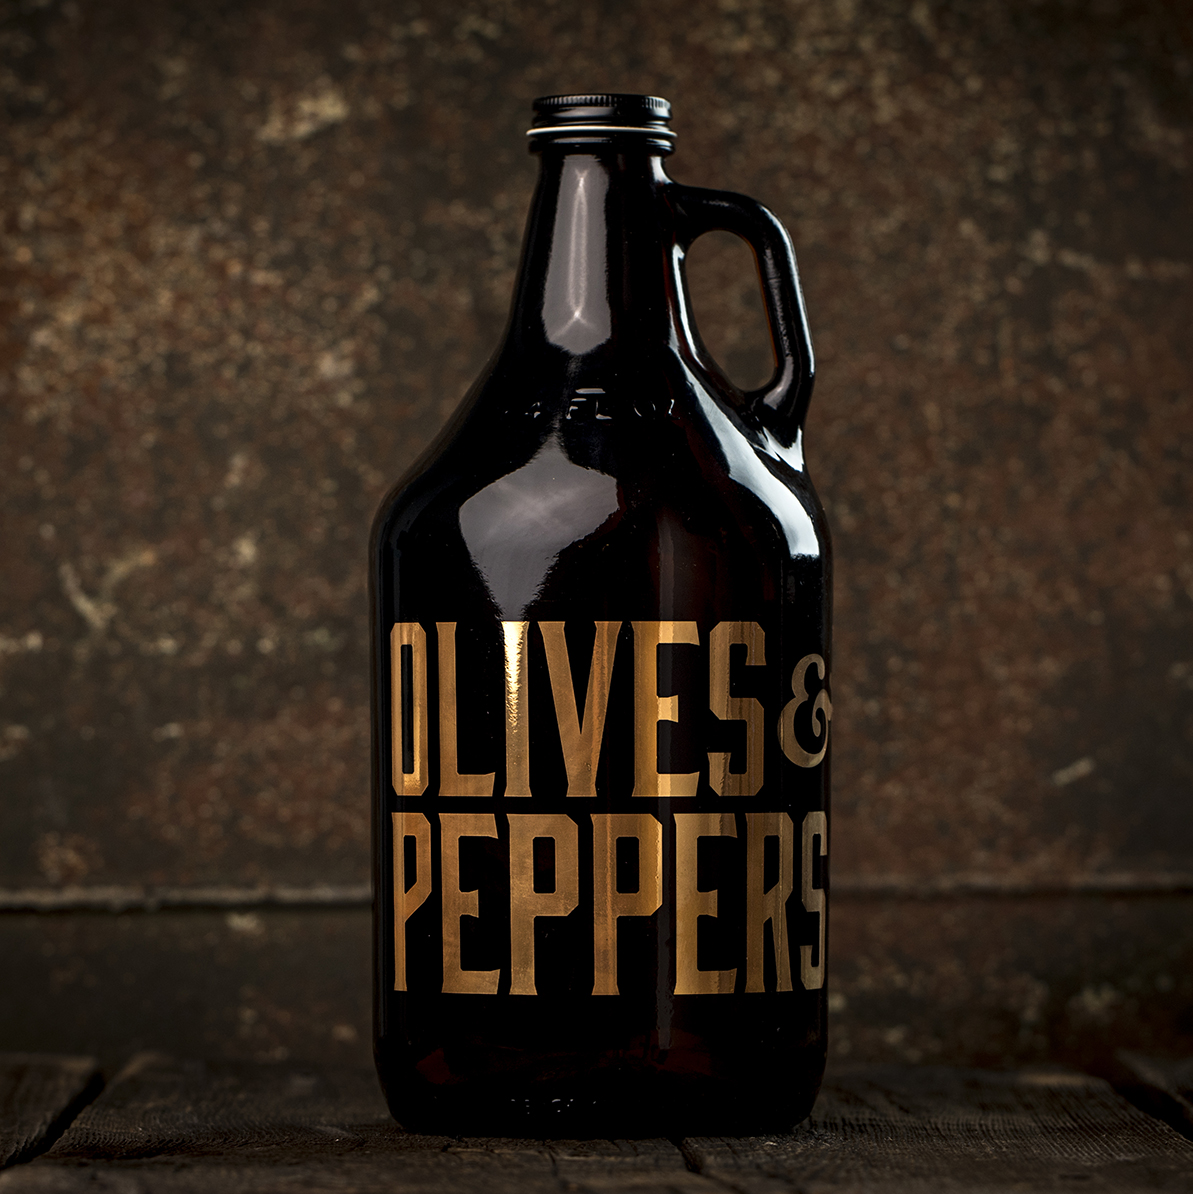 restaurant_branding_olives and peppers_bootstrap design co_growler2.jpg